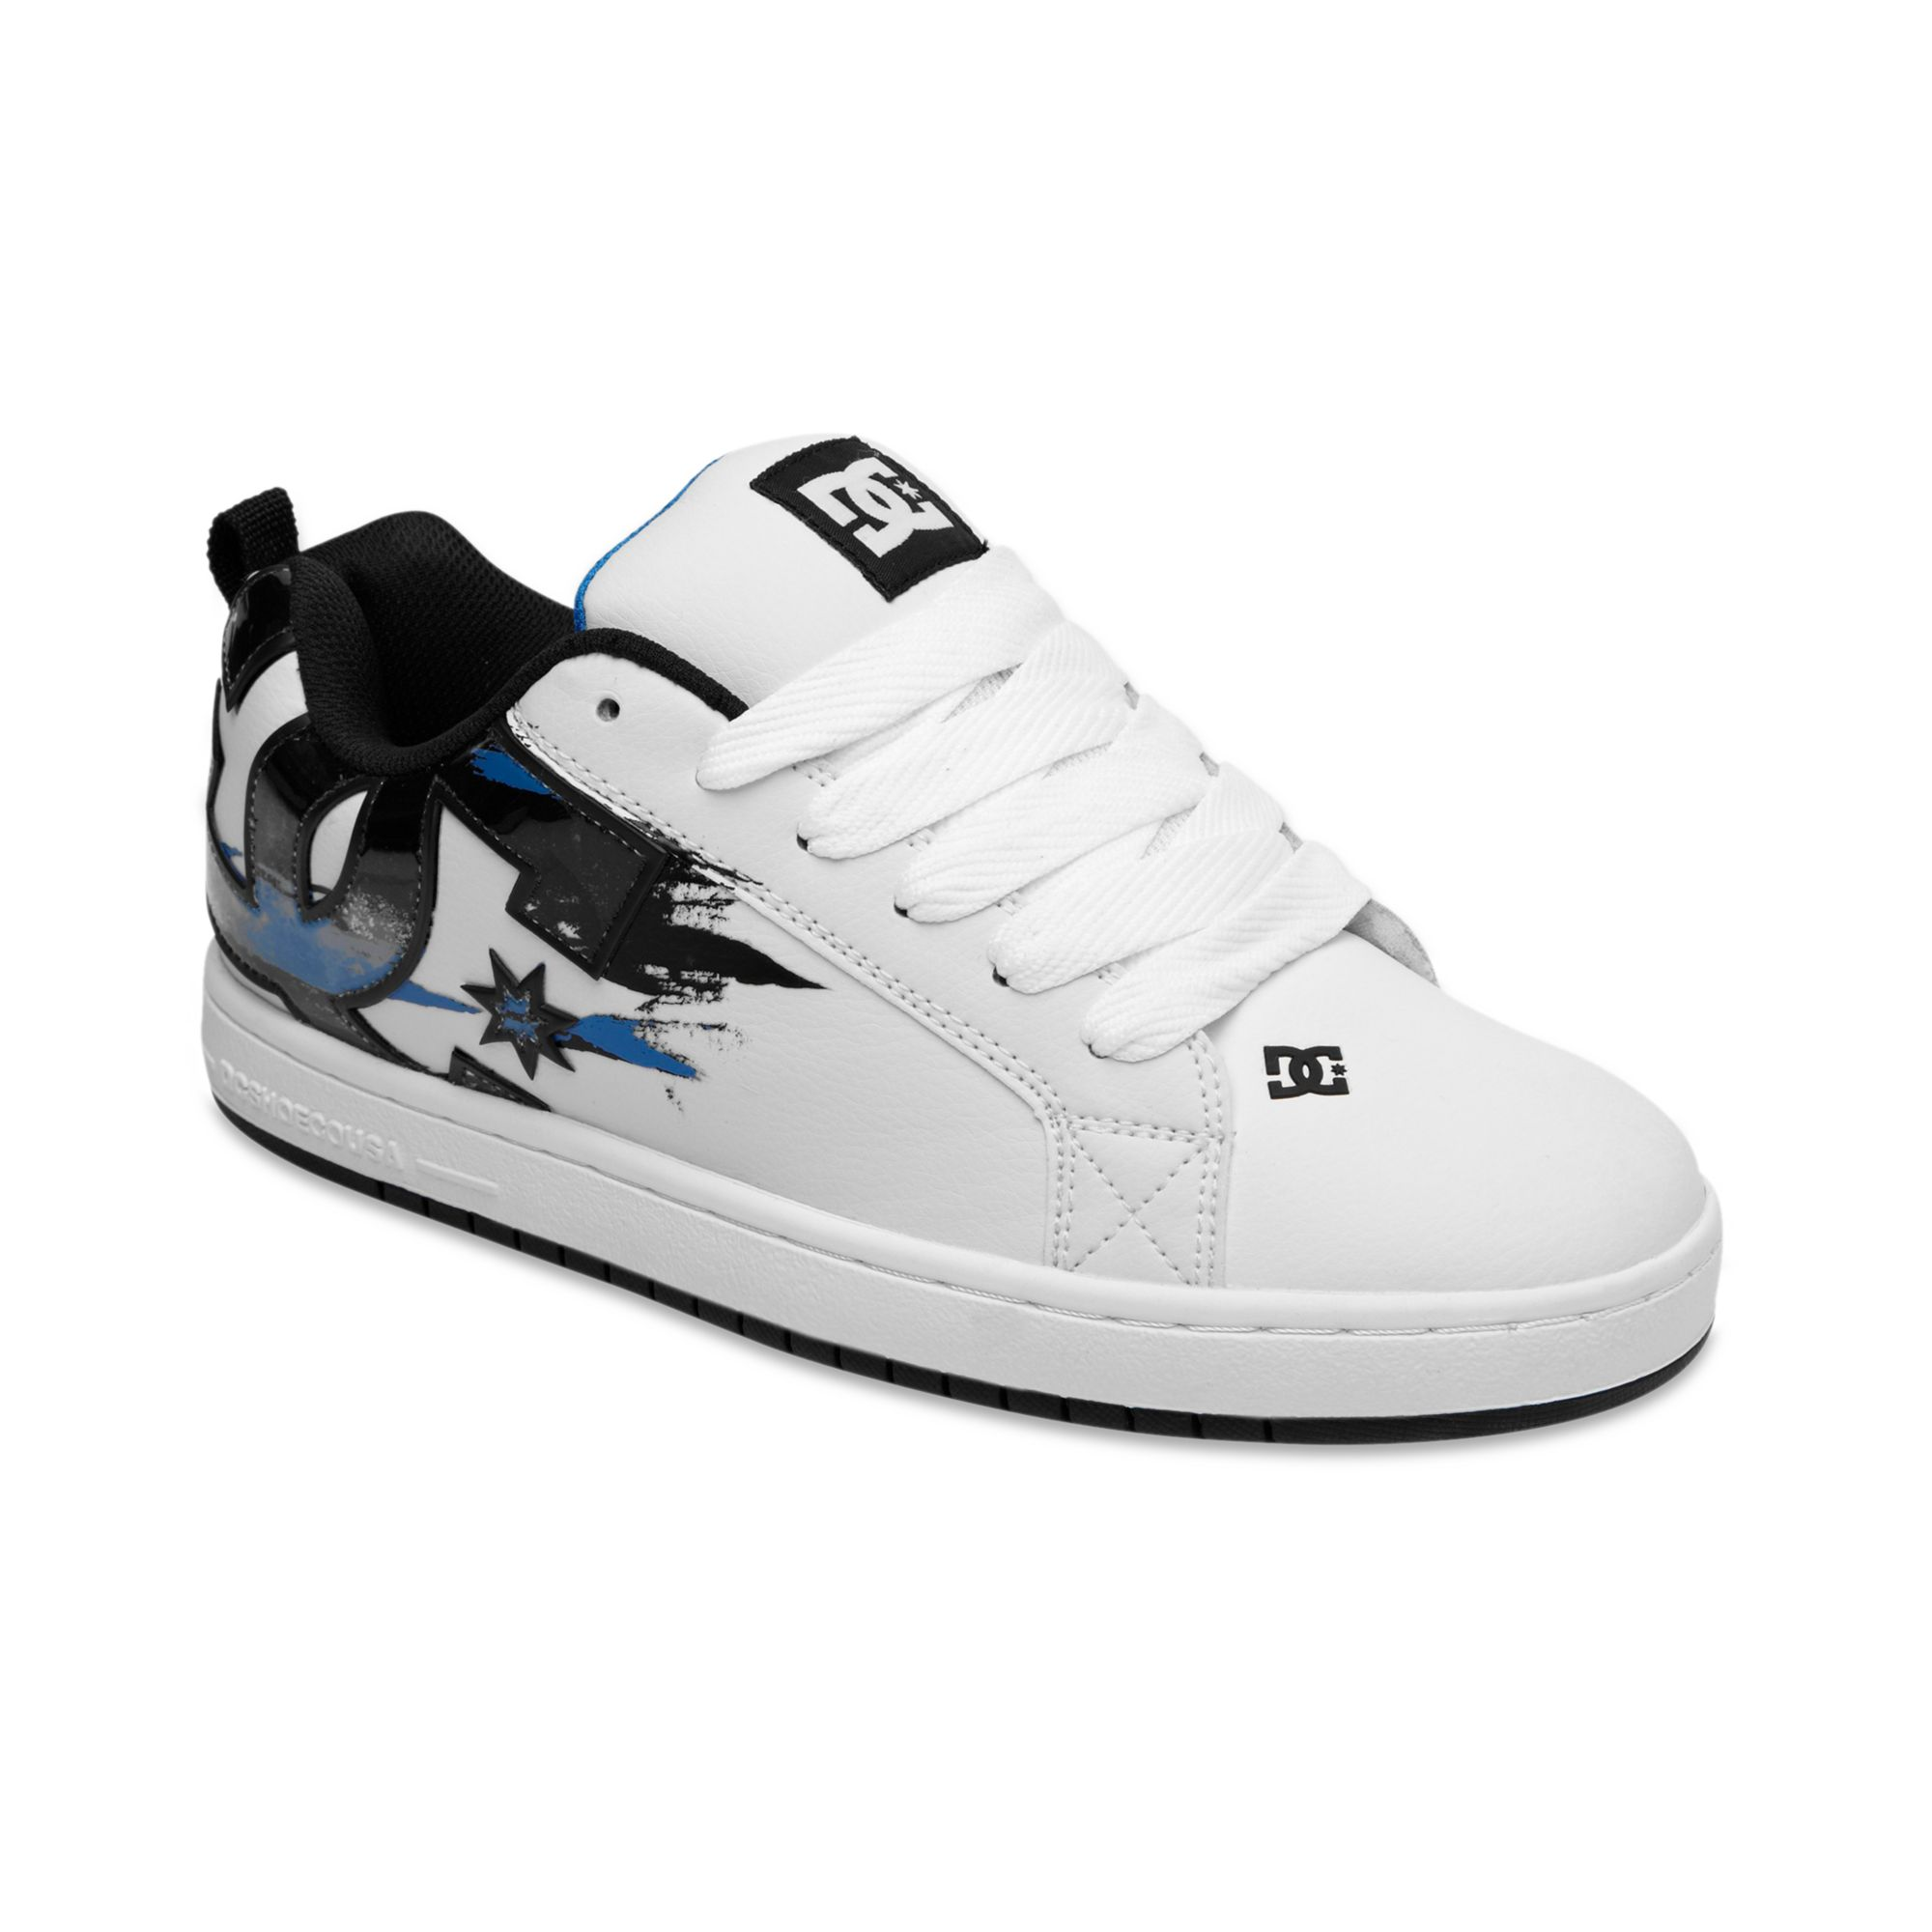 DC Shoes Court Graffic Se Sneakers in